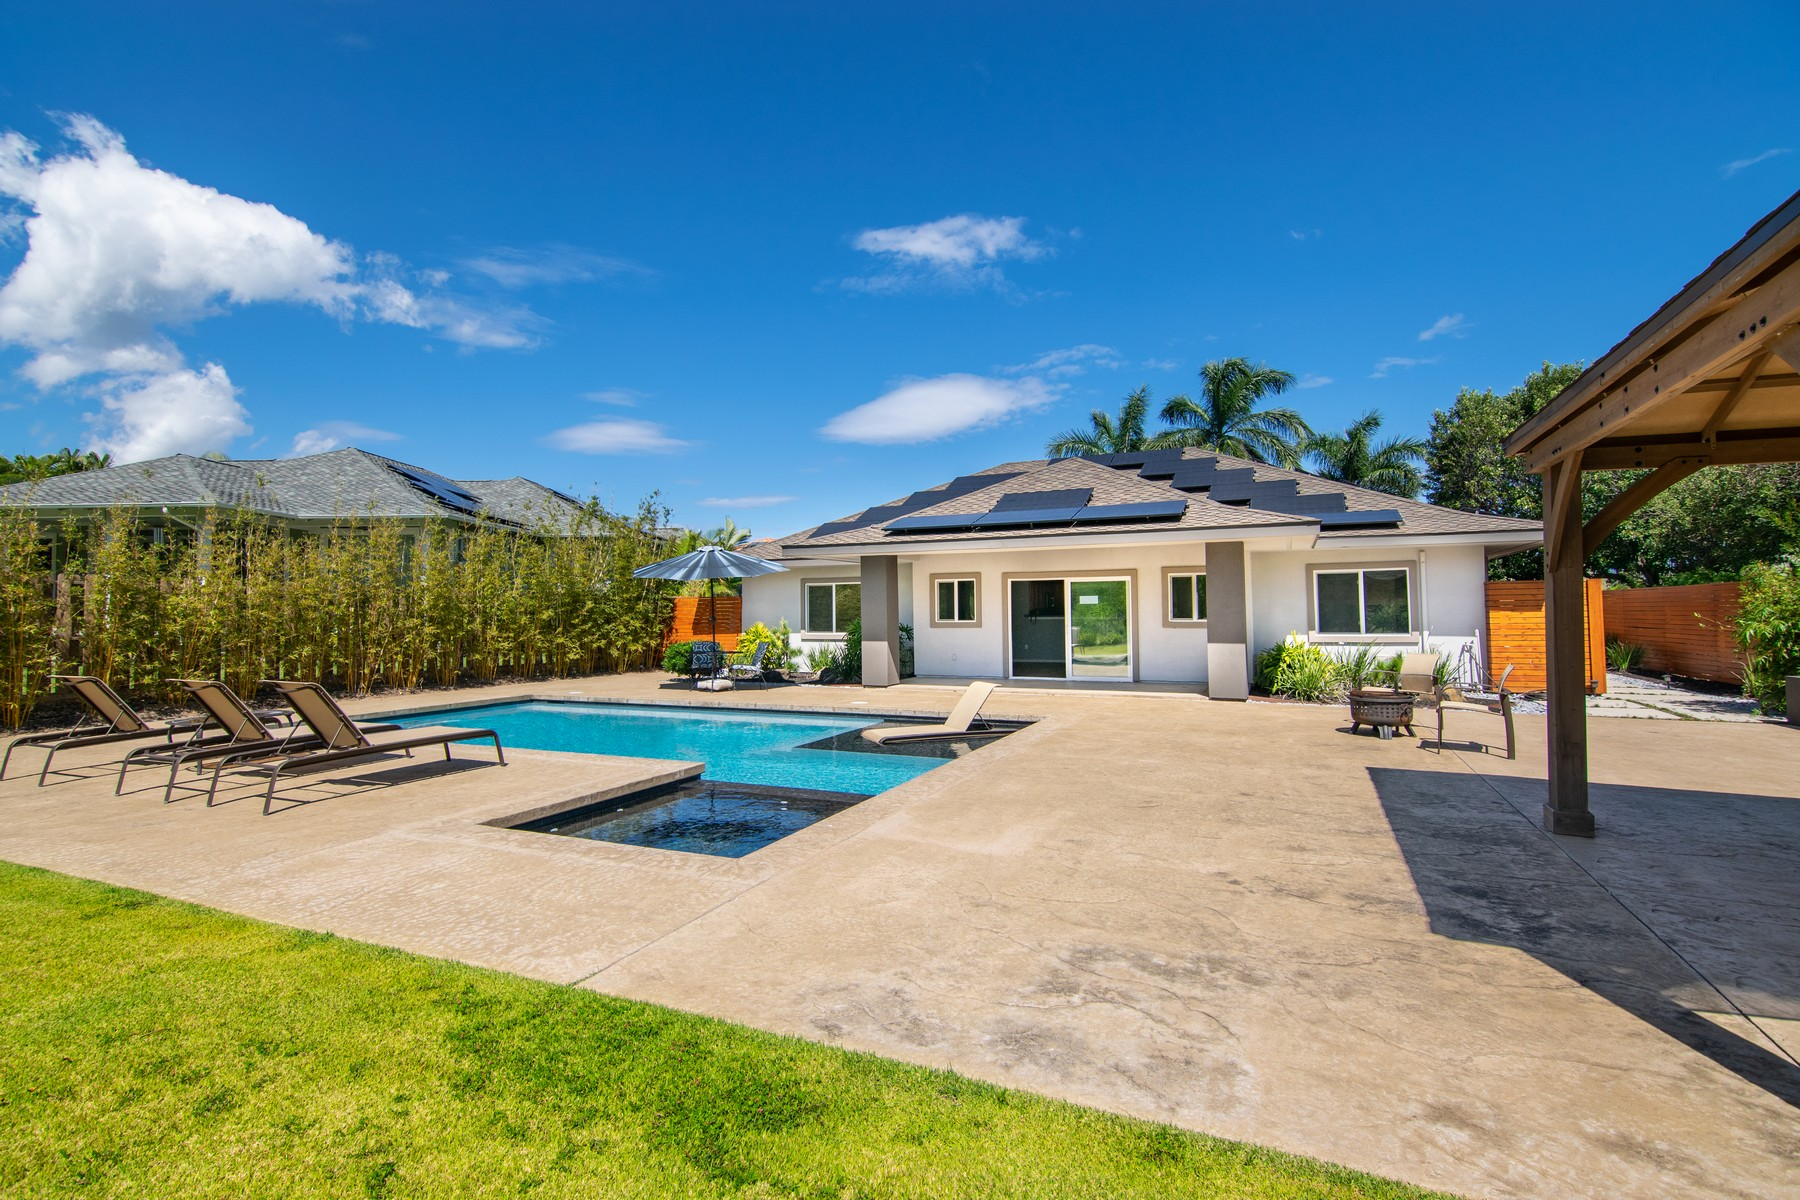 Single Family Home for Active at Backyard Oasis with Pool in Gated Central Maui Location 11 Keoneloa Street Wailuku, Hawaii 96798 United States